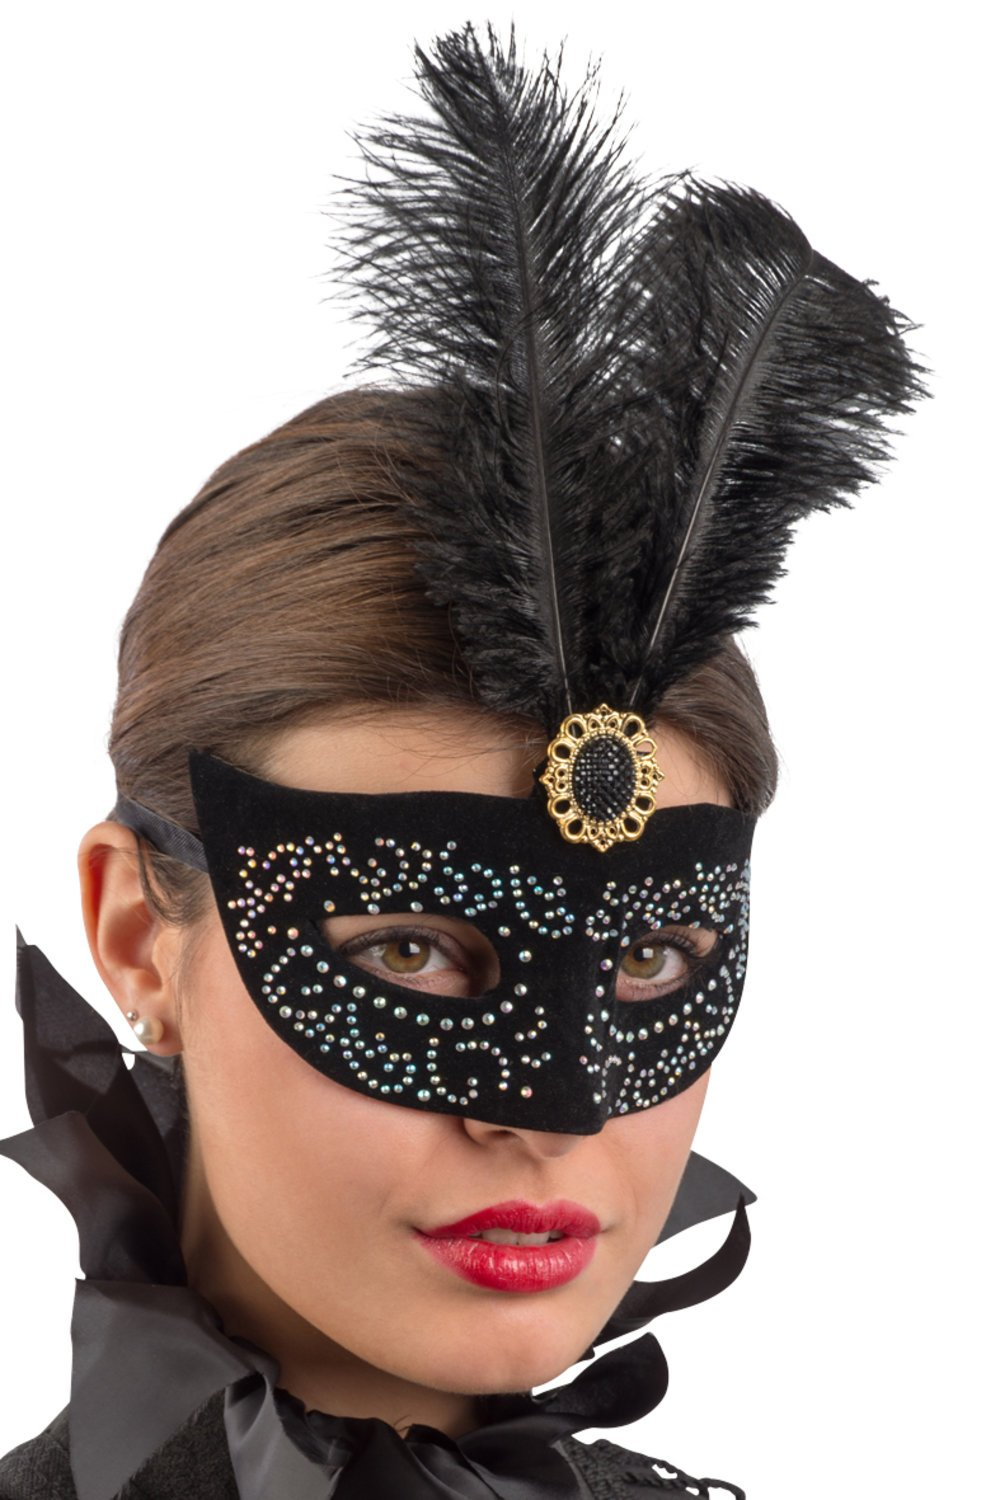 Ansiktsmask - Black velvet mask with silver and feathers